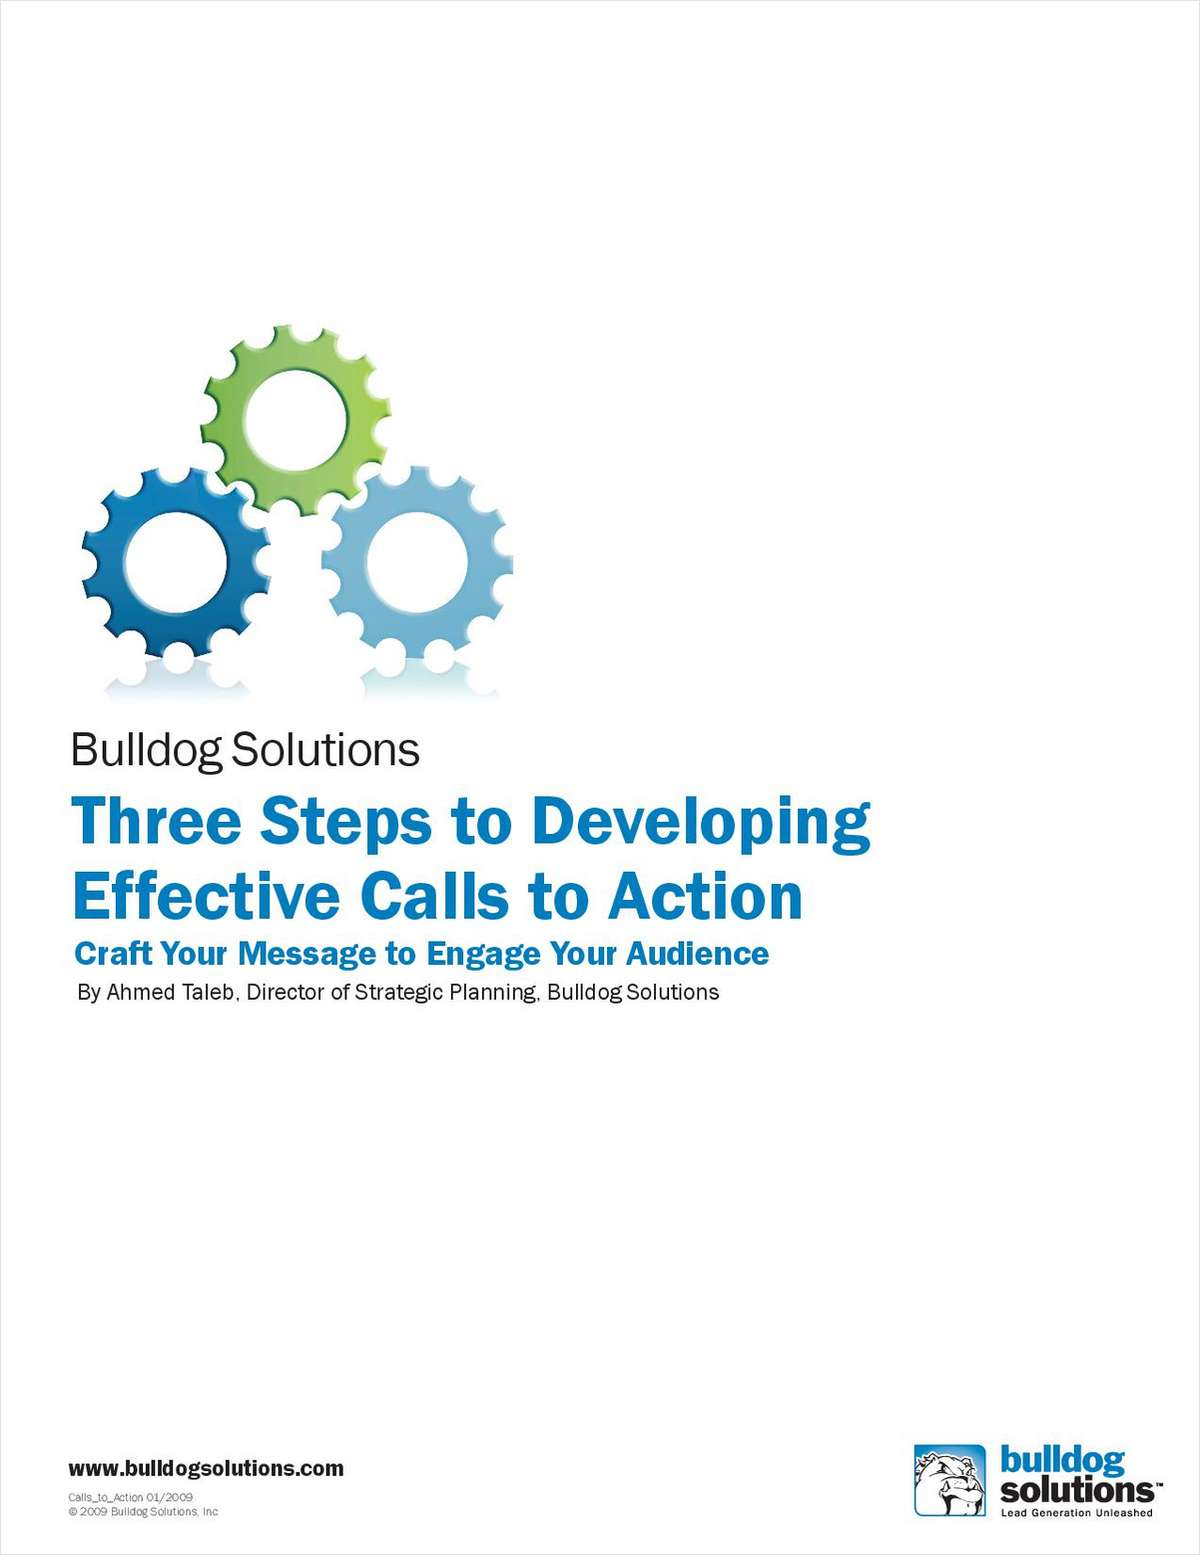 3 Steps to Developing Effective Calls to Action